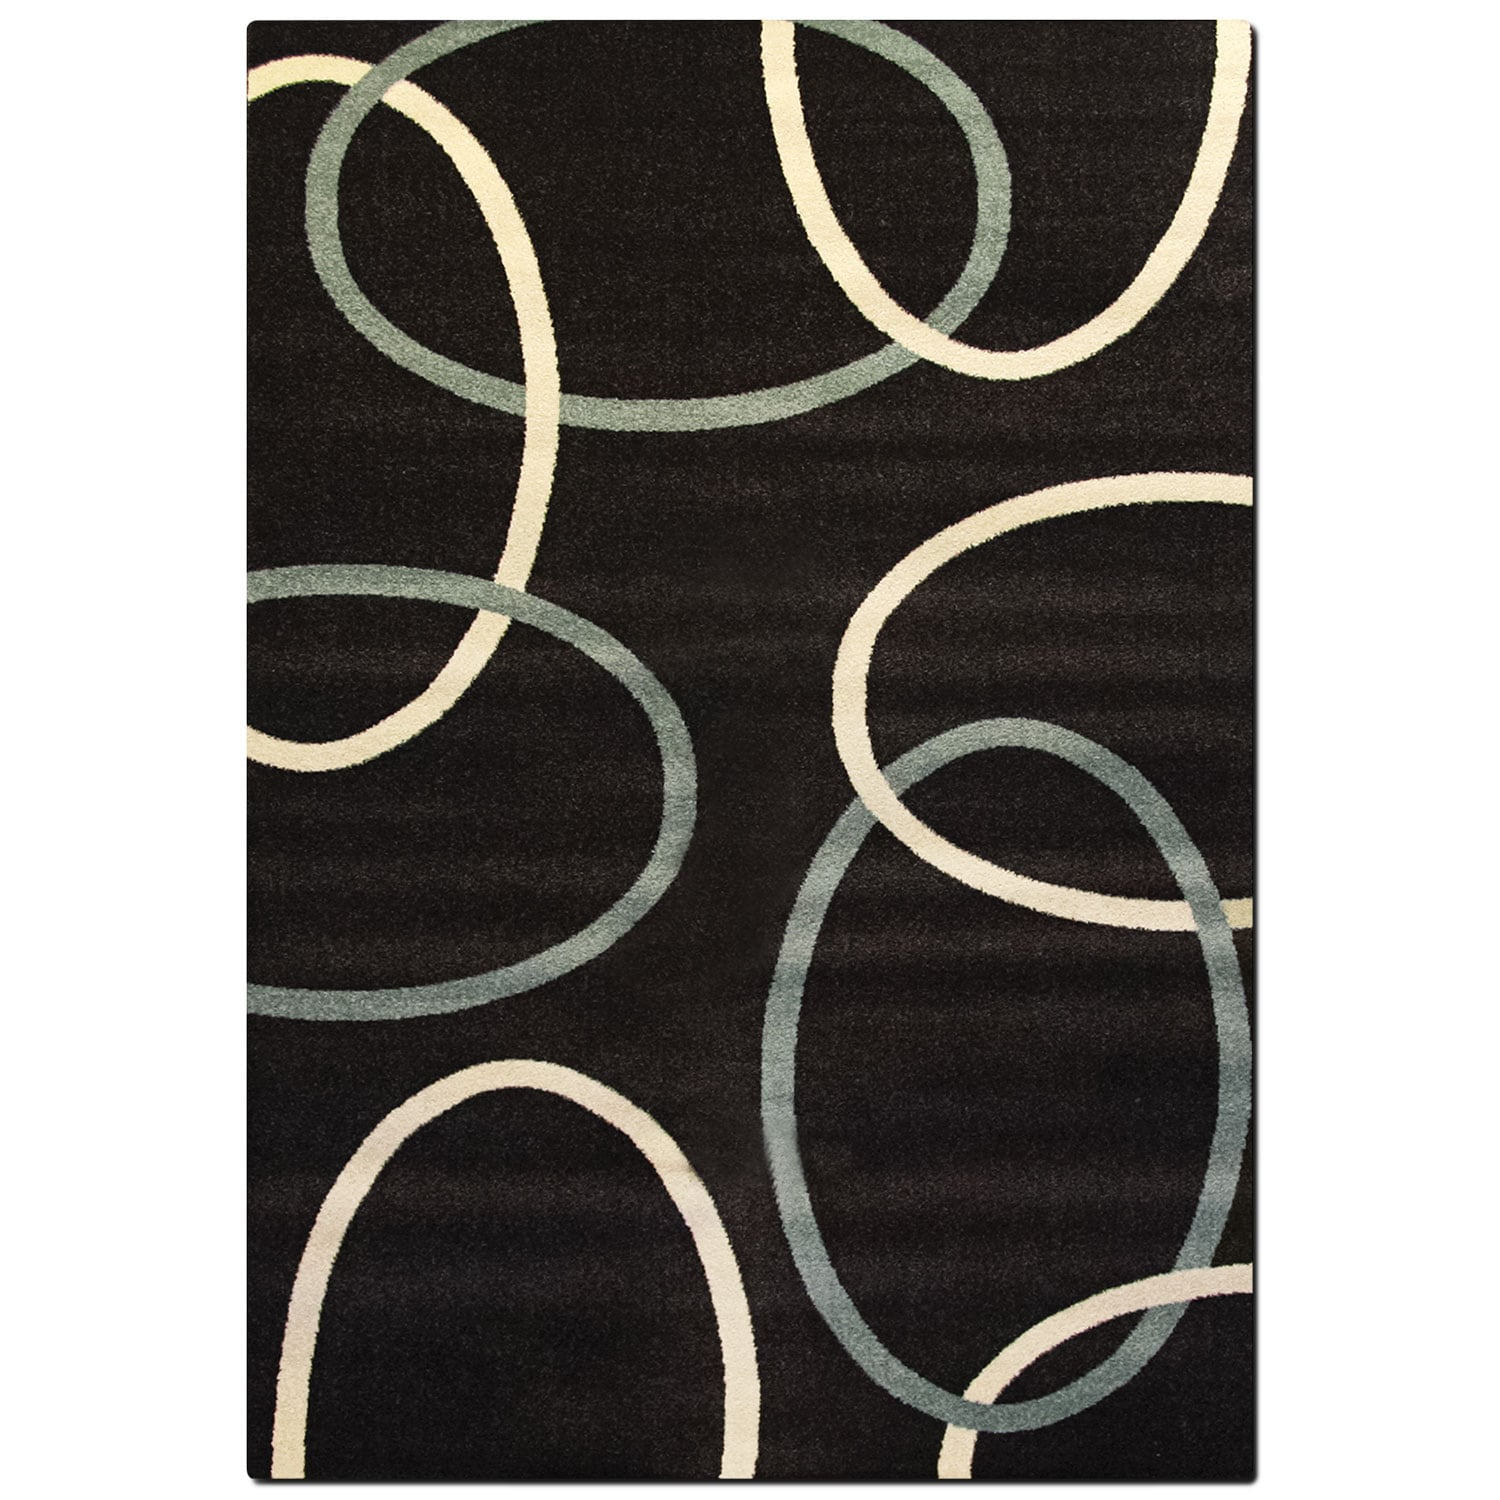 Rugs - Casa 8' x 10' Area Rug - Chocolate and Aqua